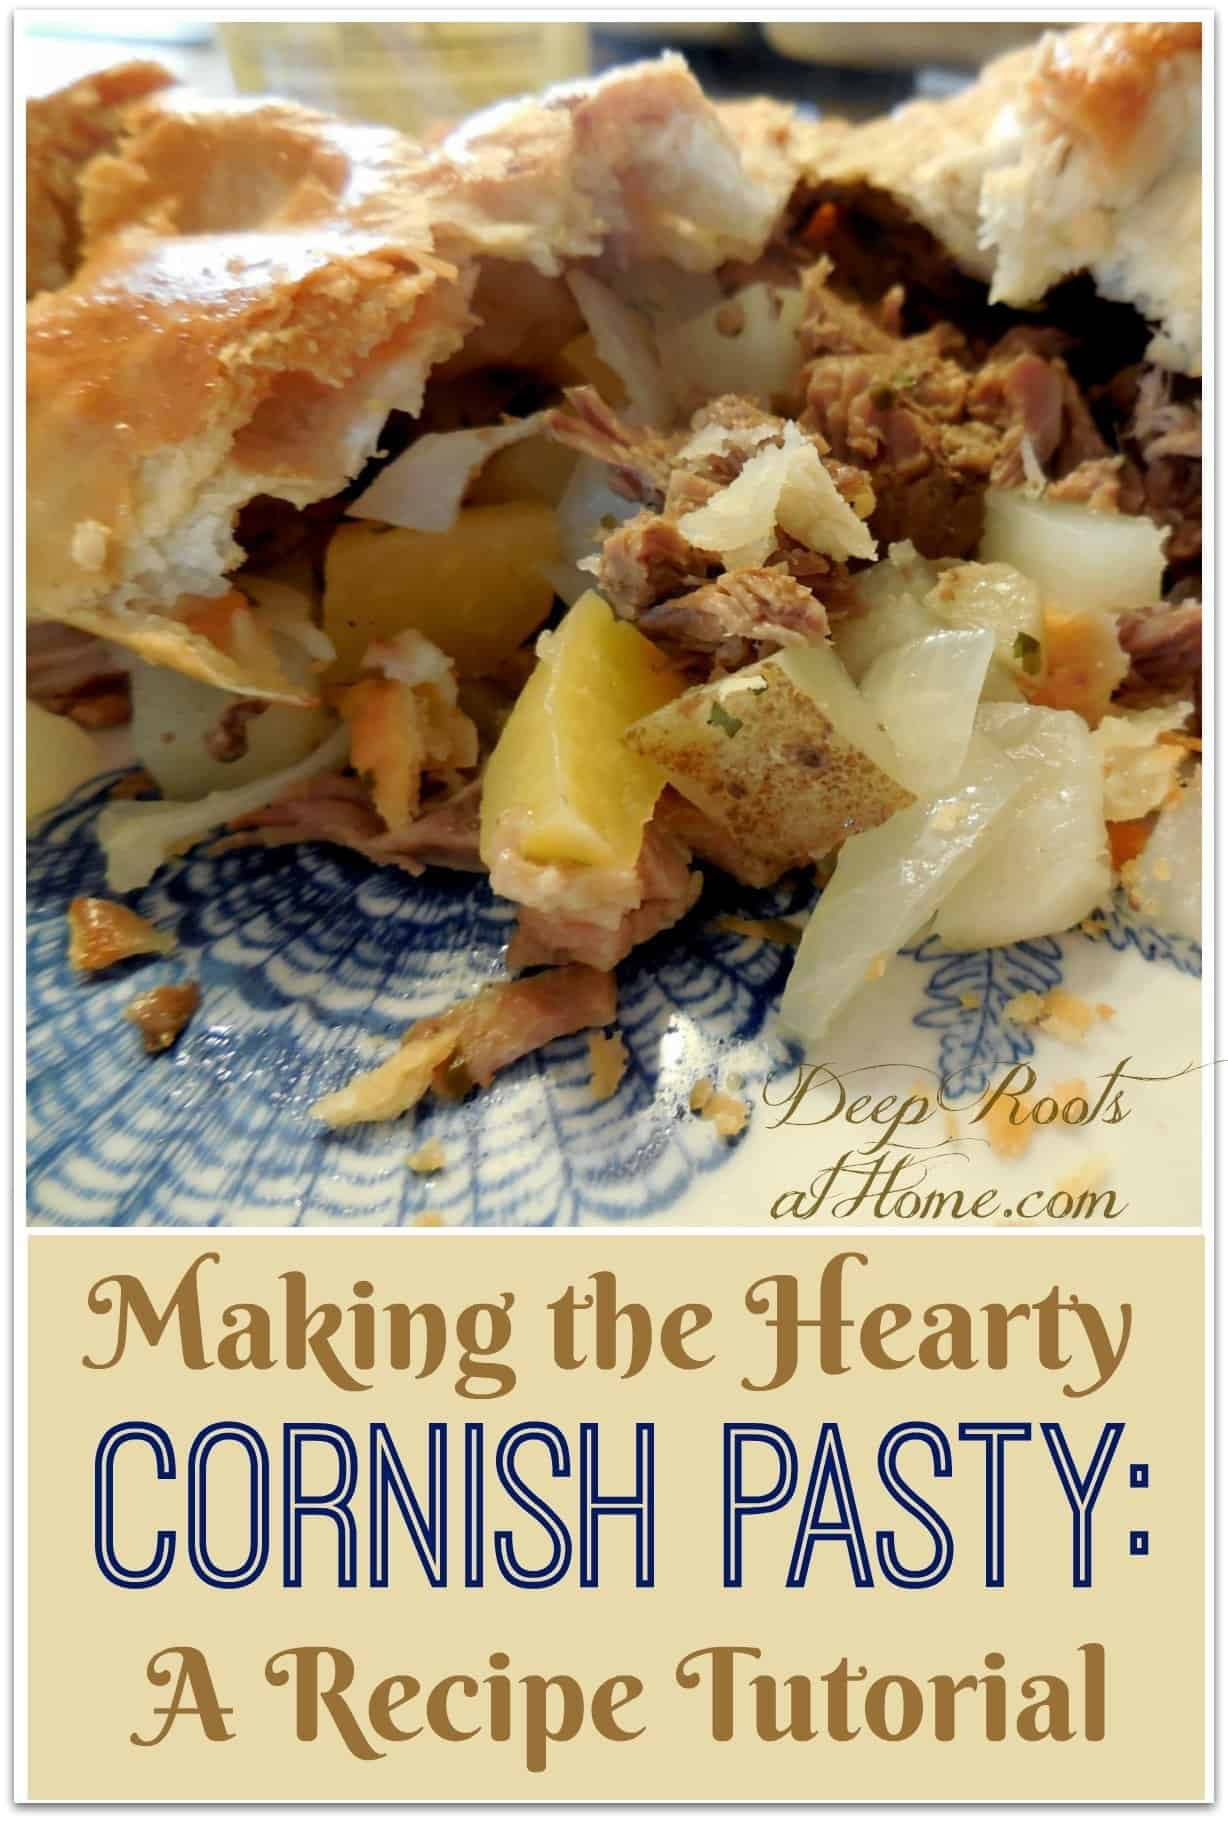 Making the Hearty Cornish Pasty: A Recipe Tutorial. Contents of a pasty meat pie